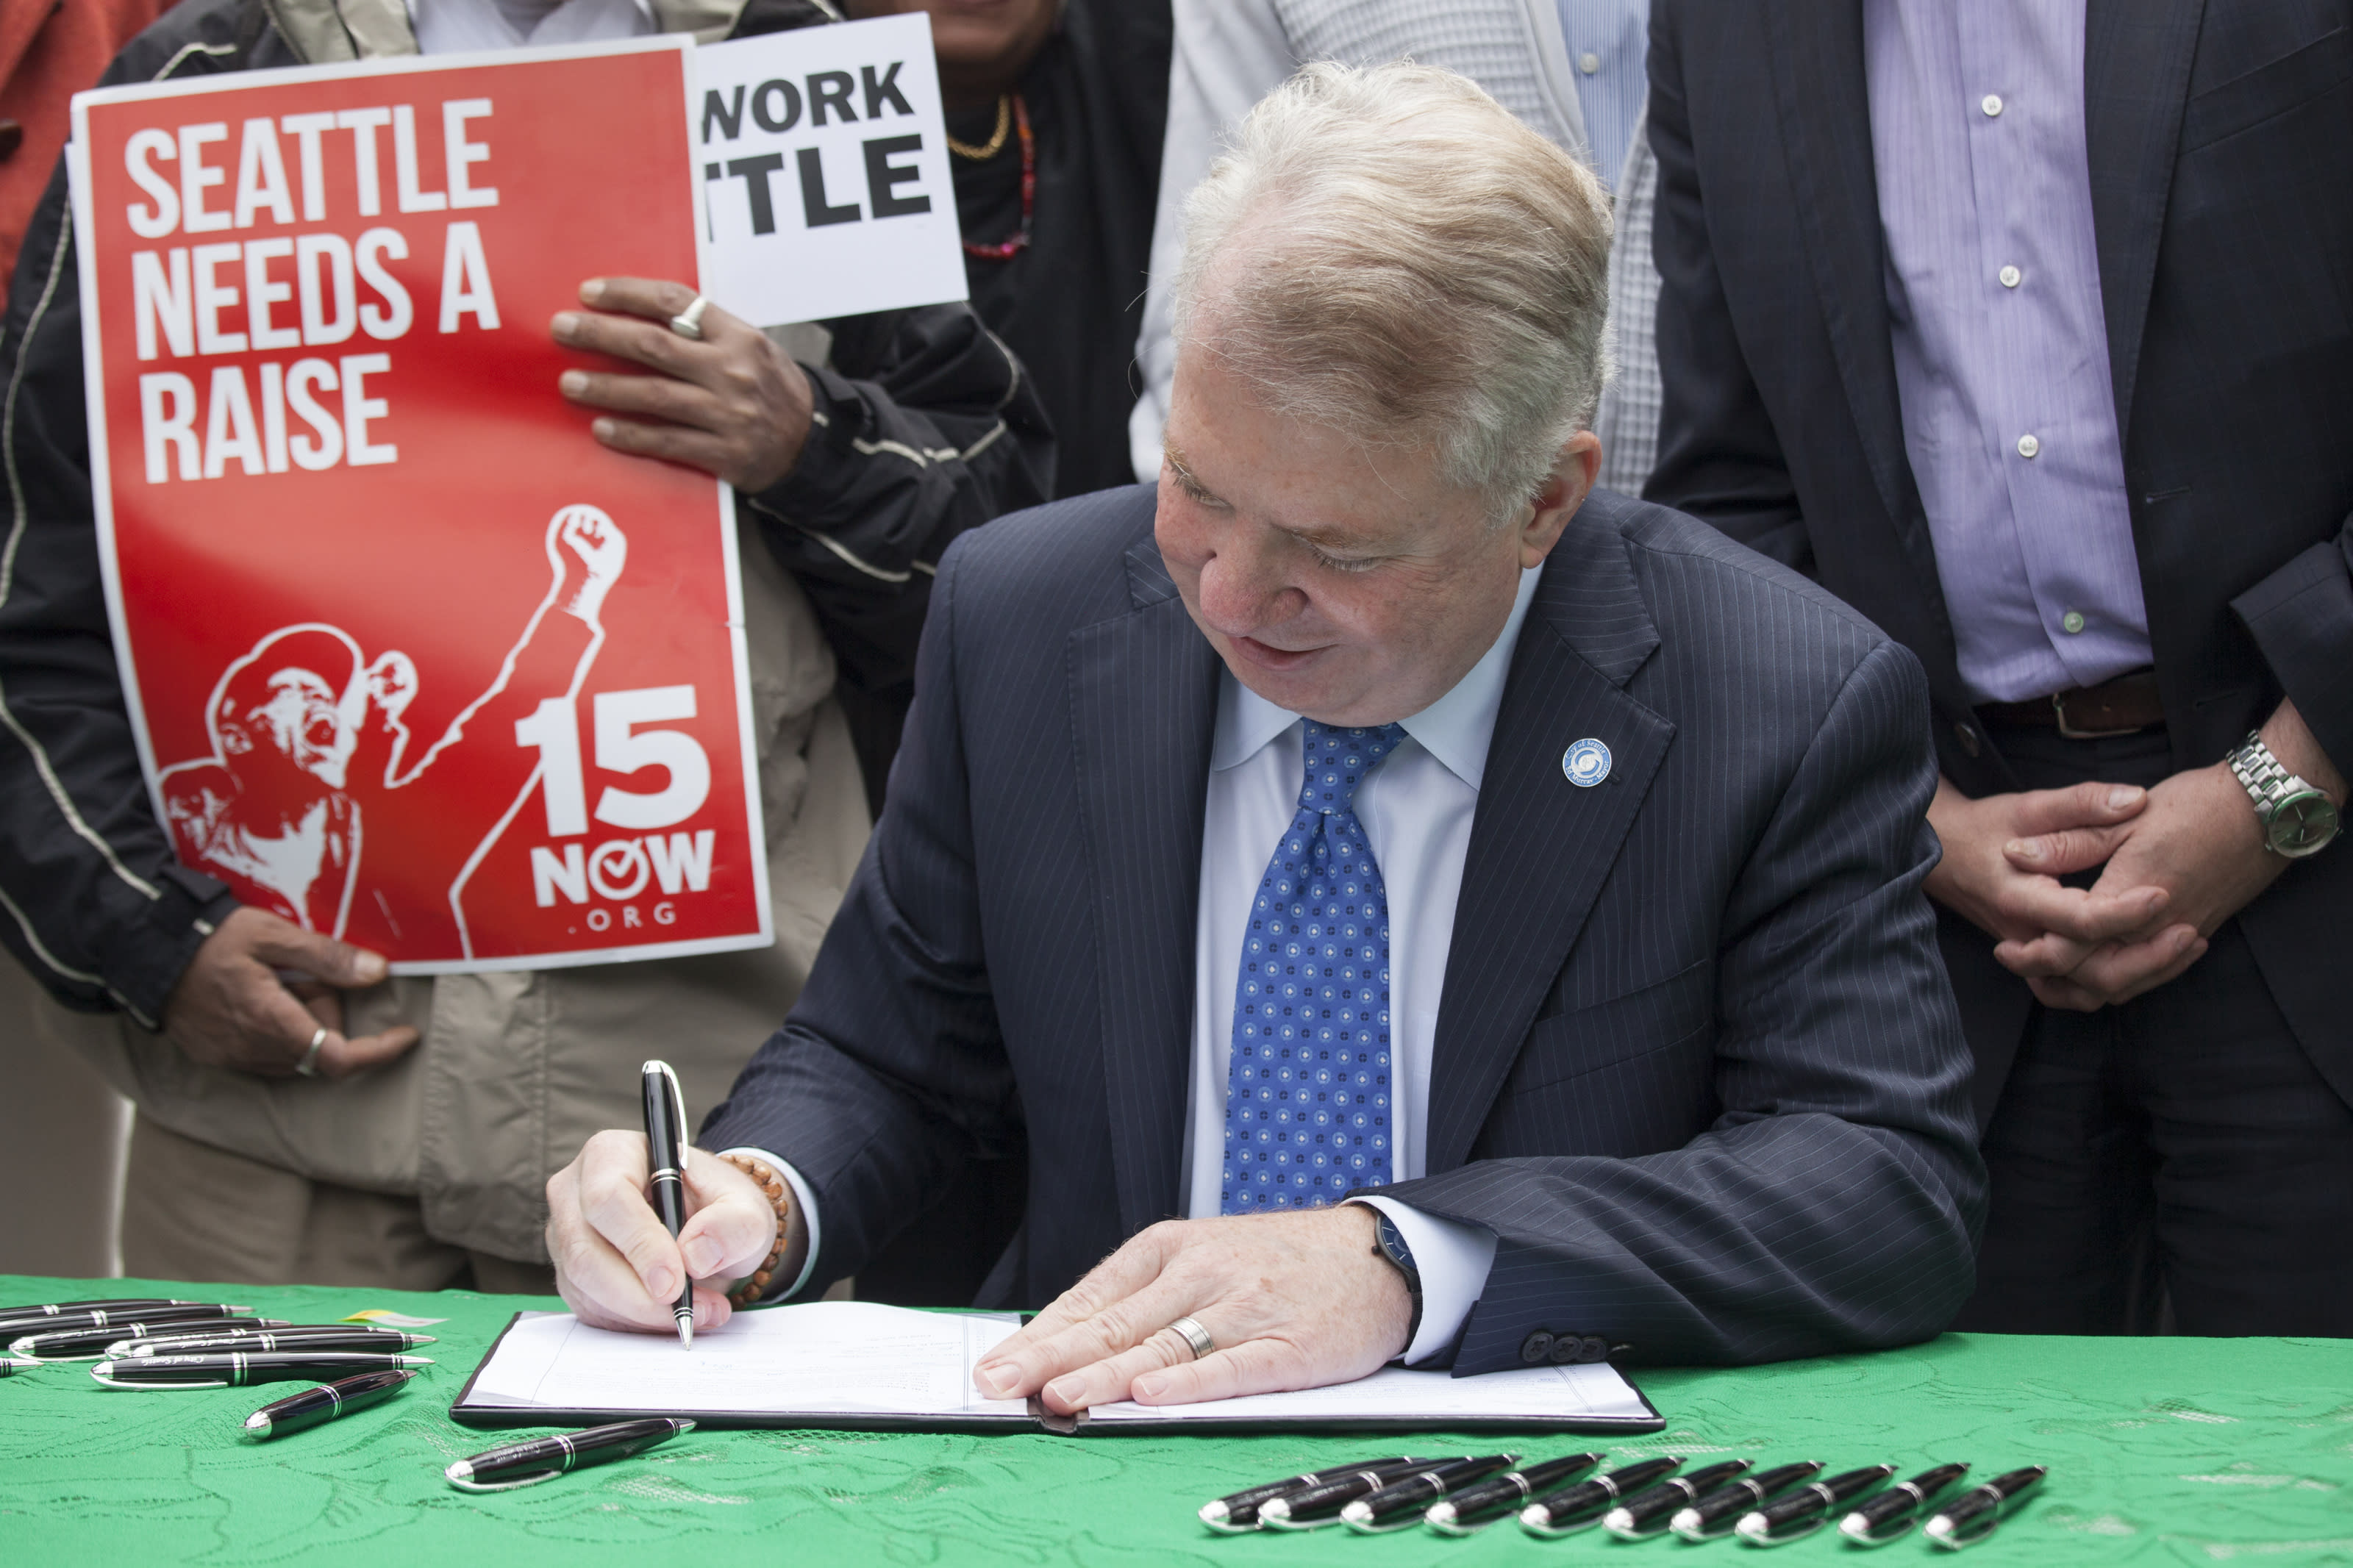 Supreme Court Rejects Challenge to Seattle's Minimum Wage Law